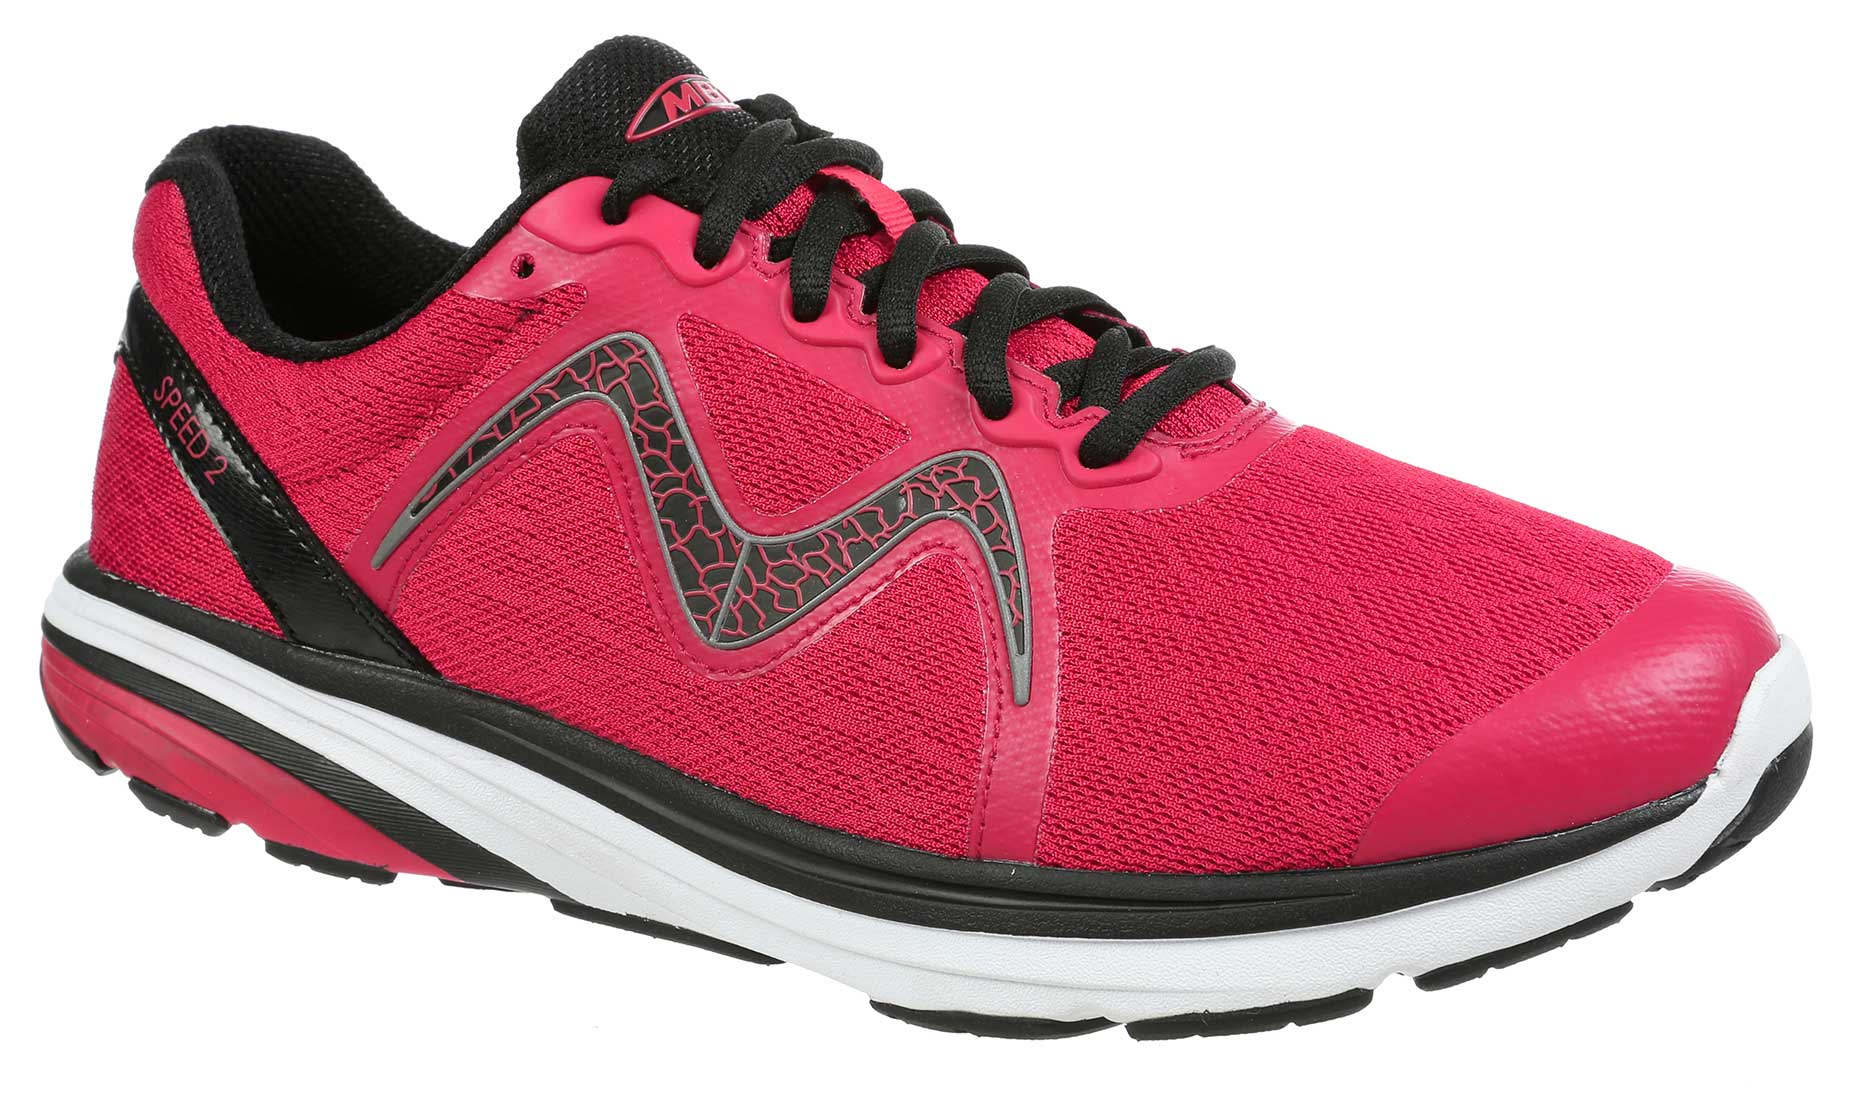 MBT Womens Speed 2 Athletic Shoe